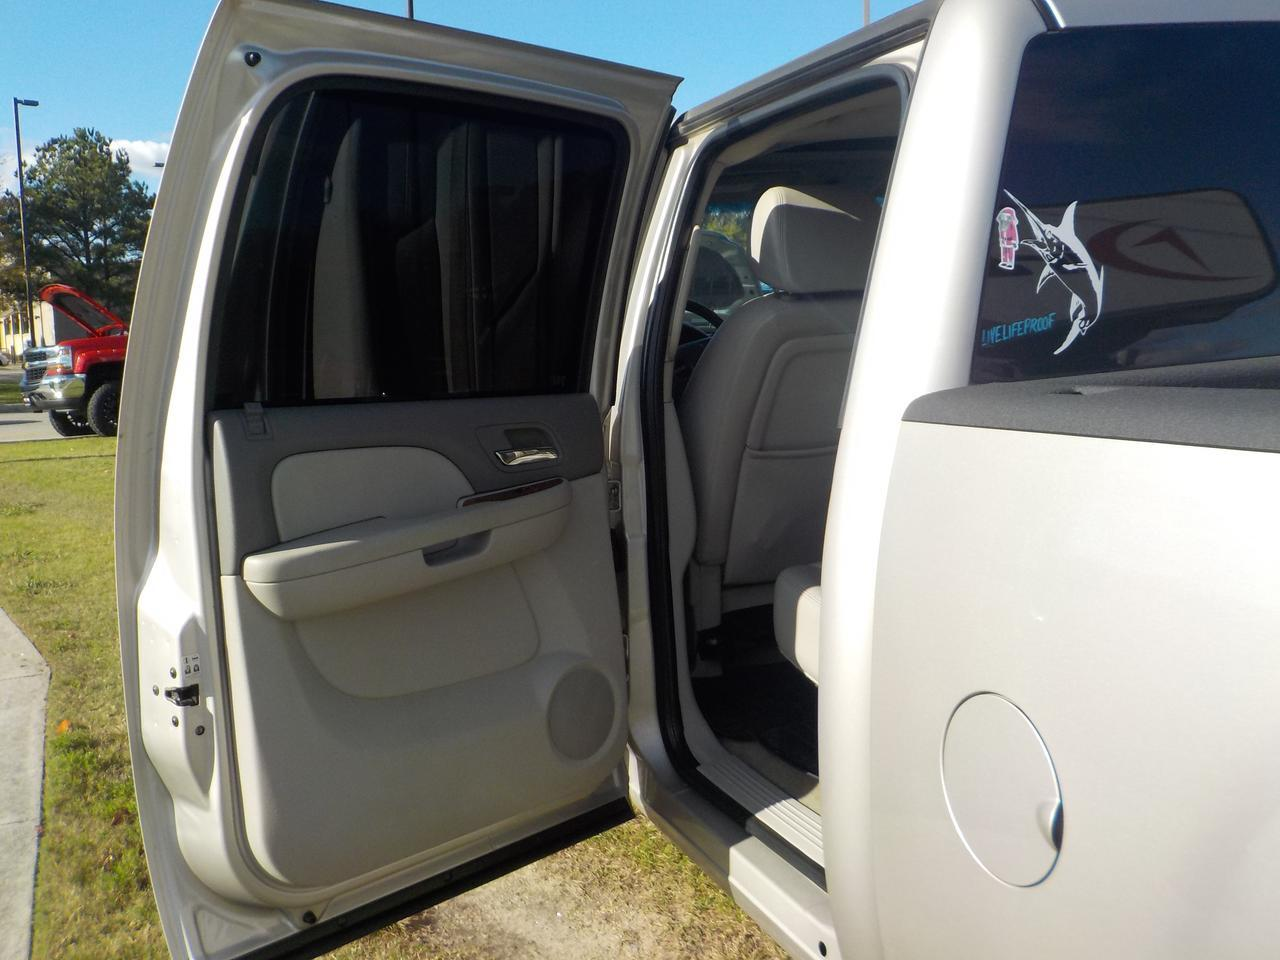 2008 GMC SIERRA 2500 CREW CAB SLE2 4X4, LEATHER, NAVIGATION, HEATED SEATS, BOSE SOUND SYSTEM, TOW PACKAGE! Virginia Beach VA